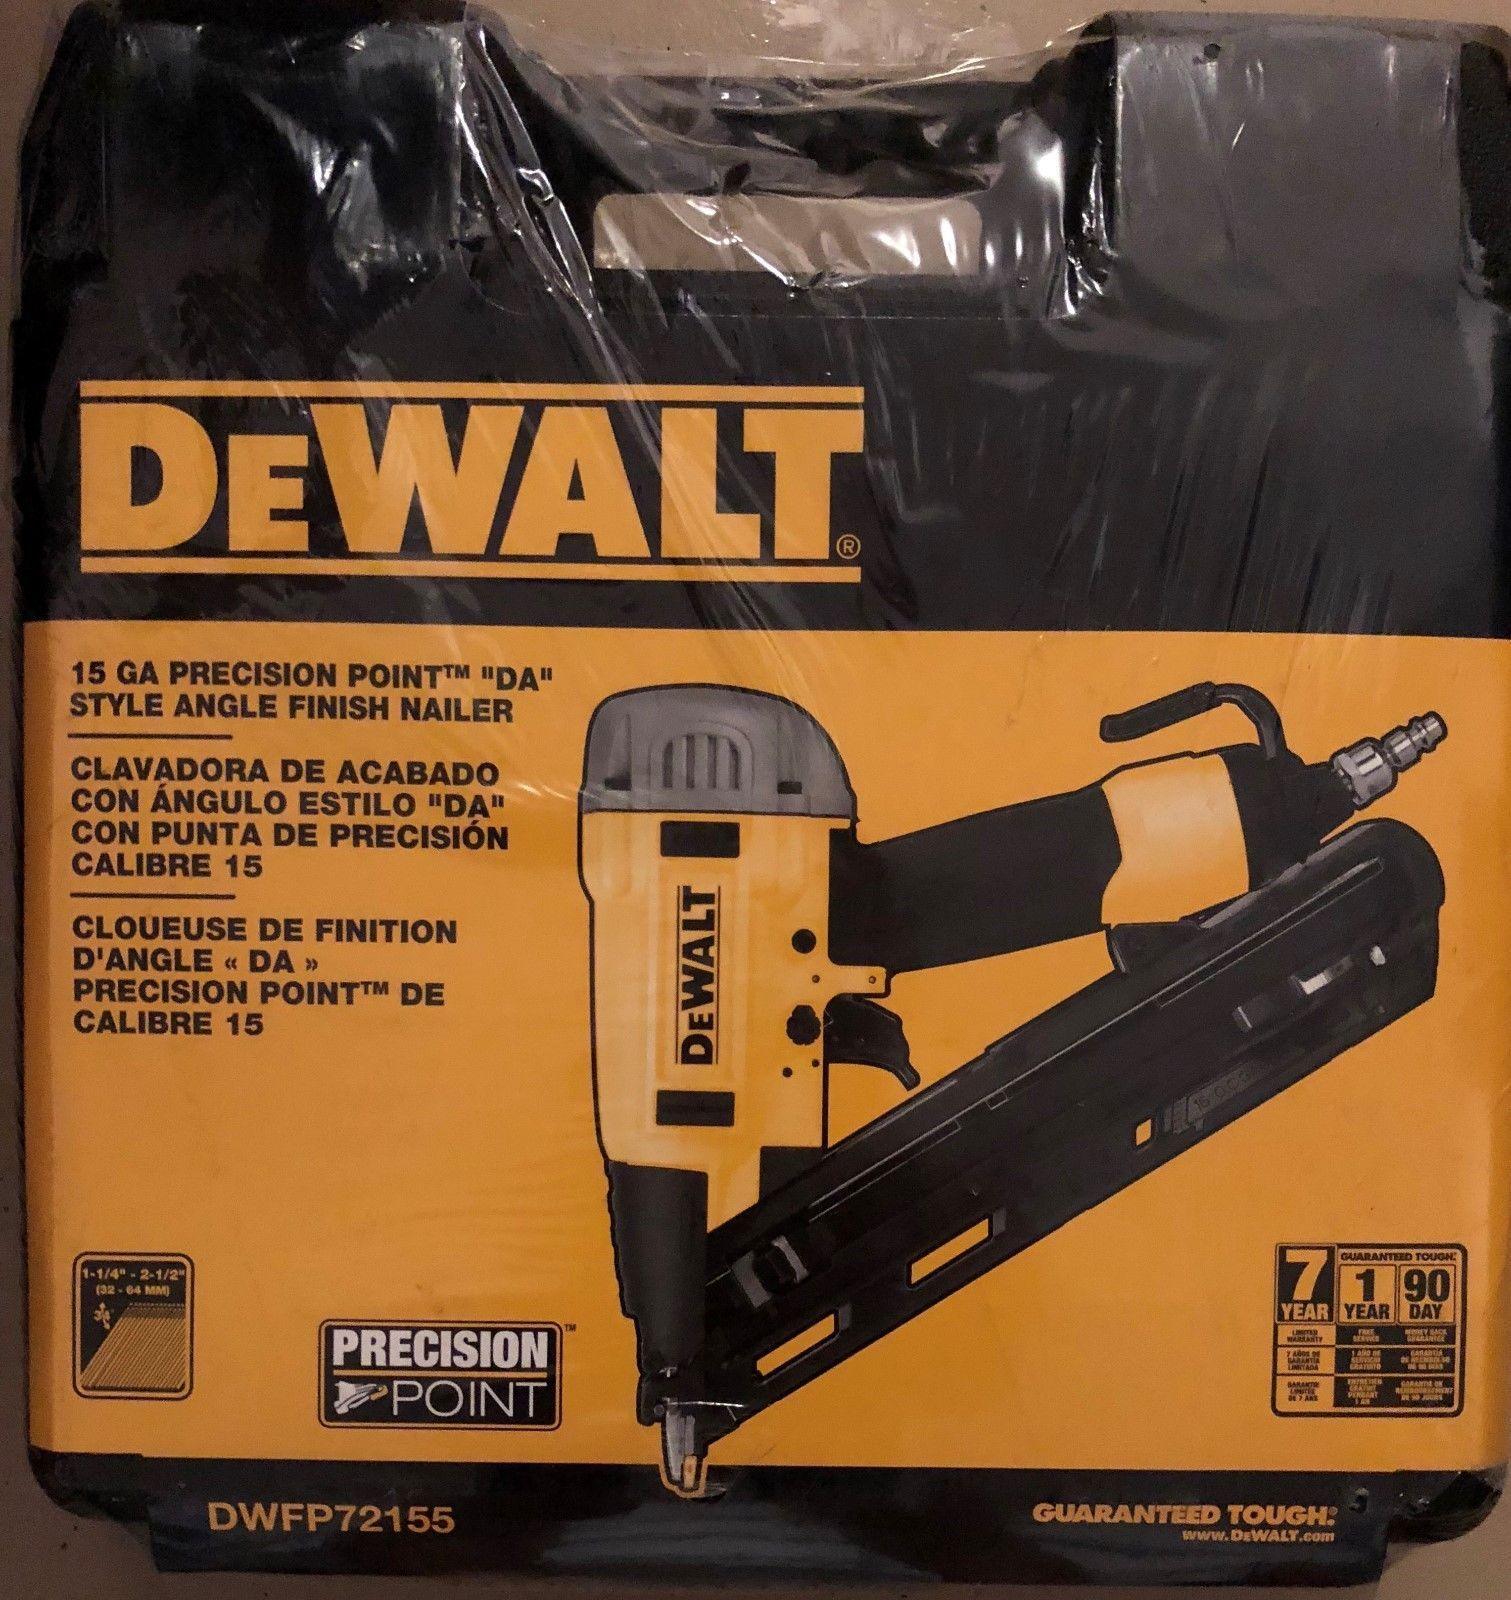 Other Air Tools 184653 Dewalt 15 Gauge Precision Point Finish Nailer Buy It Now Only 129 99 On Ebay Finish Nailer Dewalt Nailer